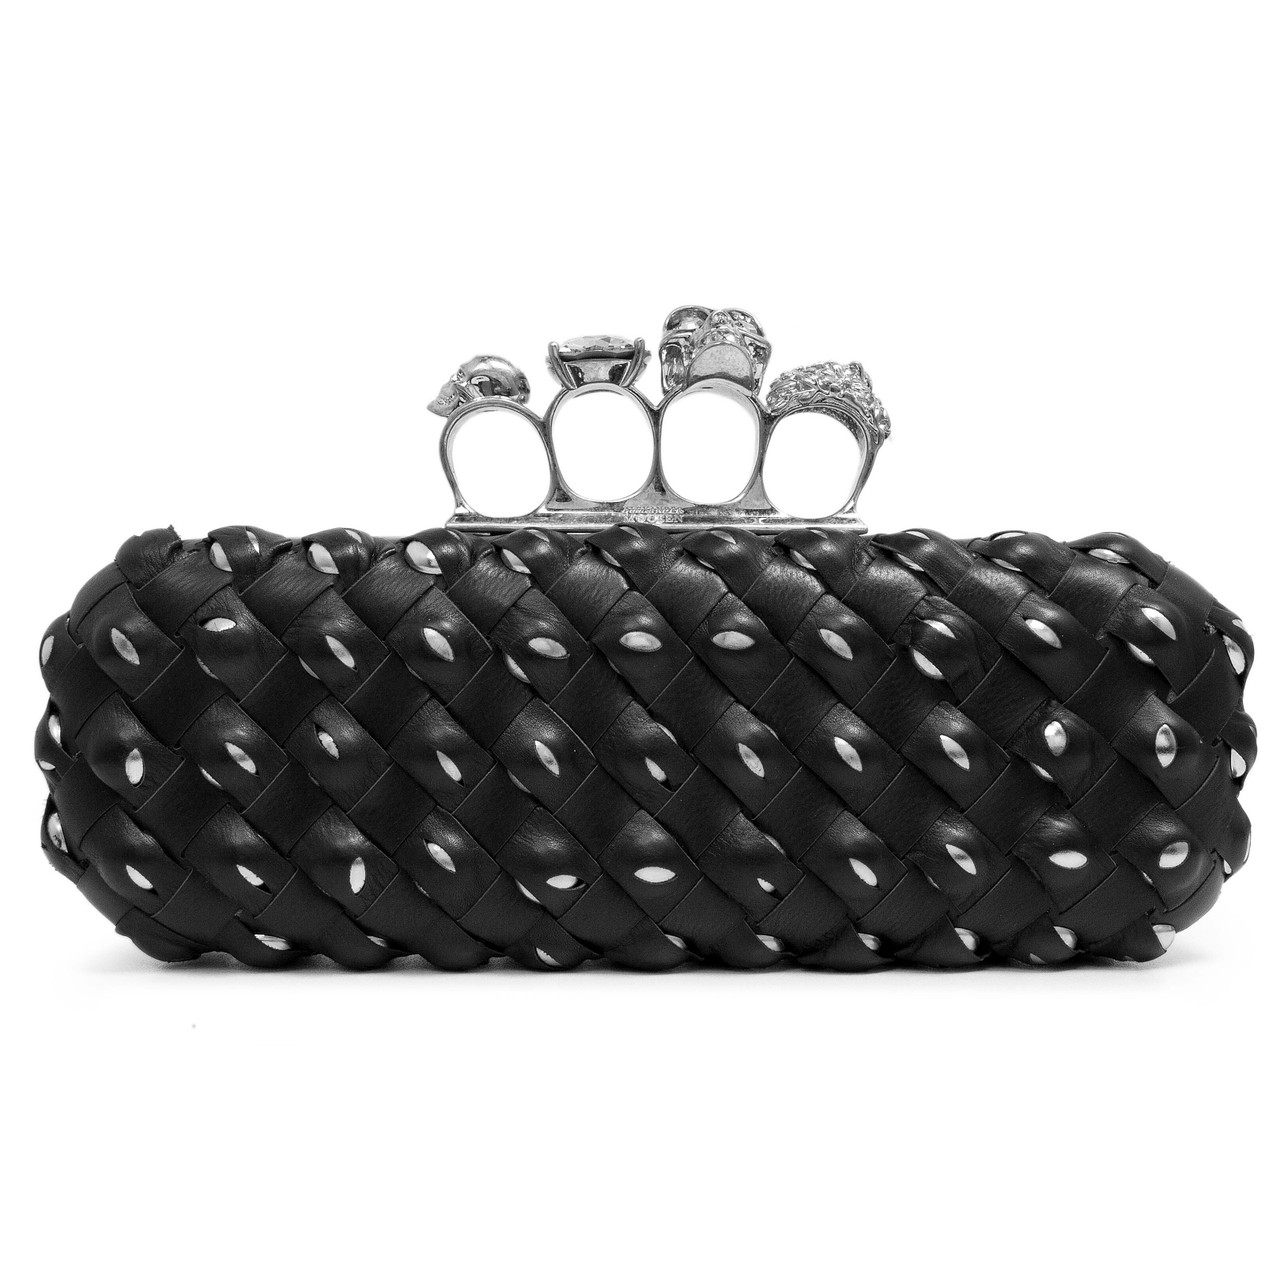 a7322fa574137 Alexander McQueen Studded Black Interwoven Leather Knuckle Box ...